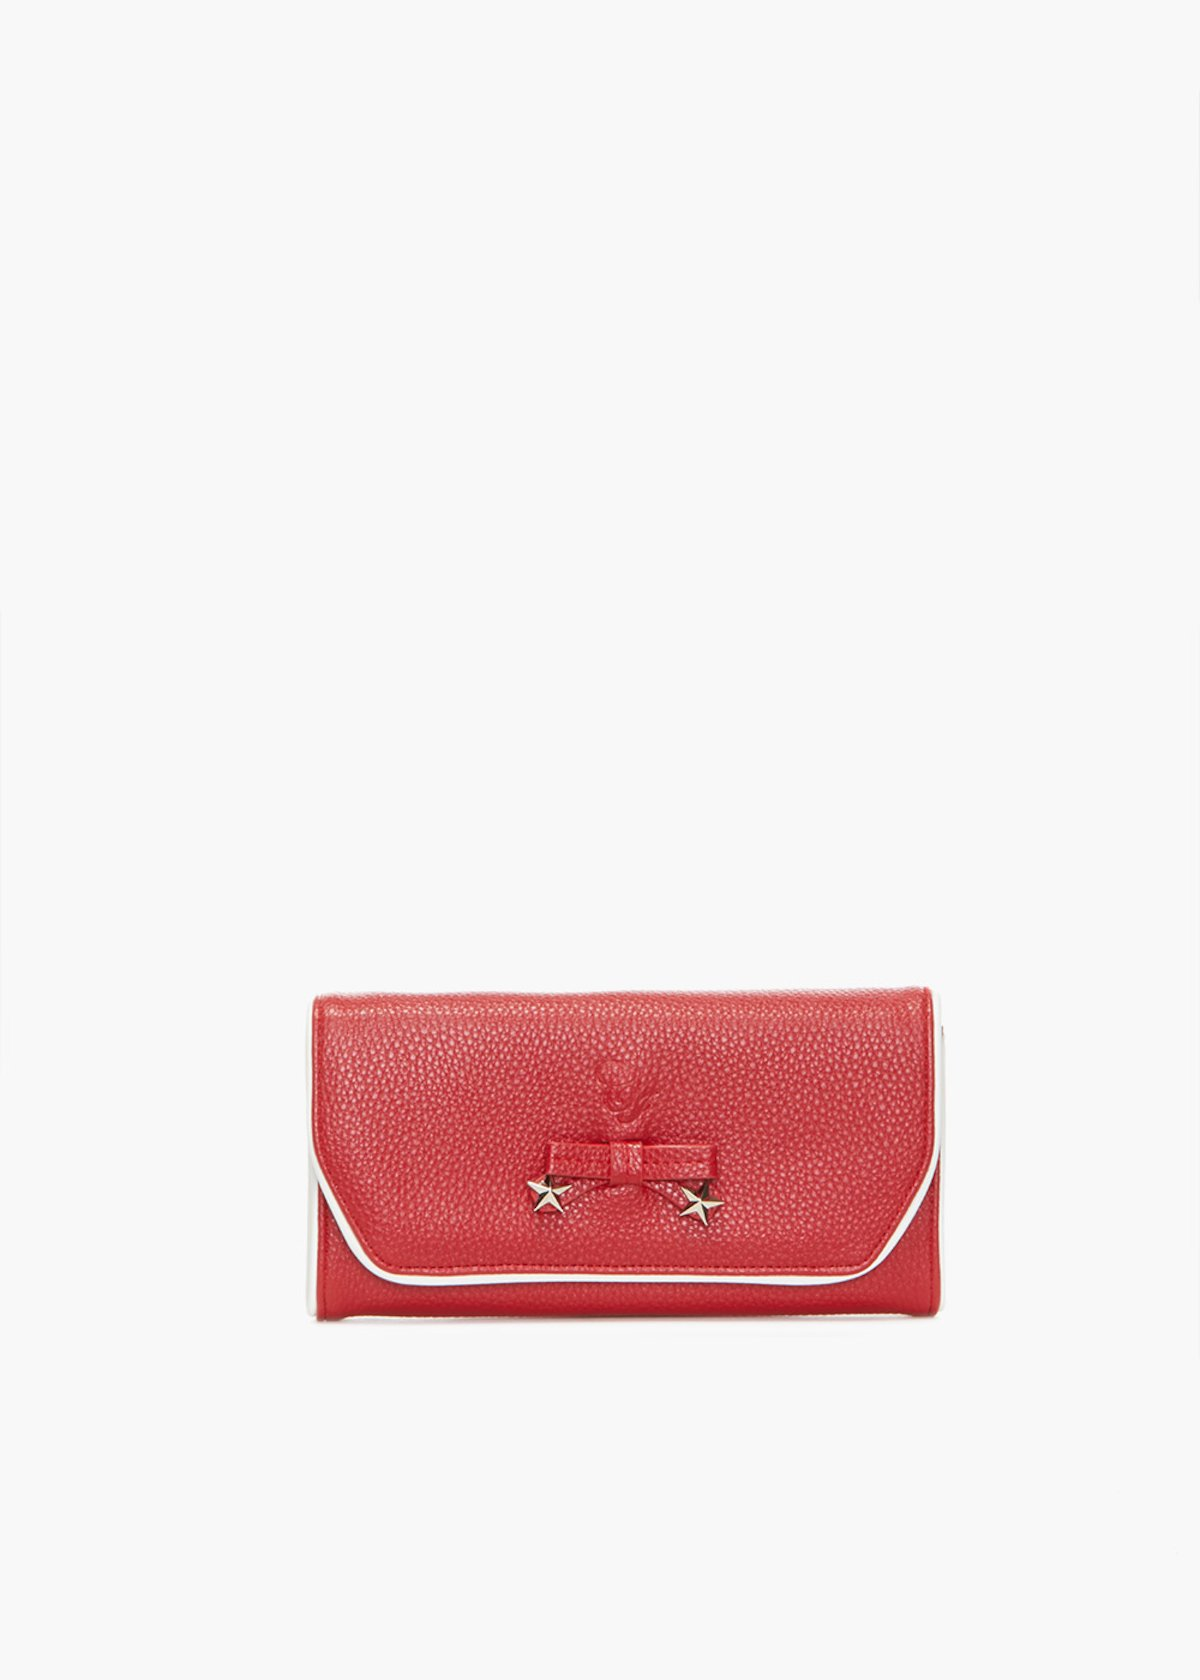 Popping Wallet with bow detail - Tulipano / White - Woman - Category image